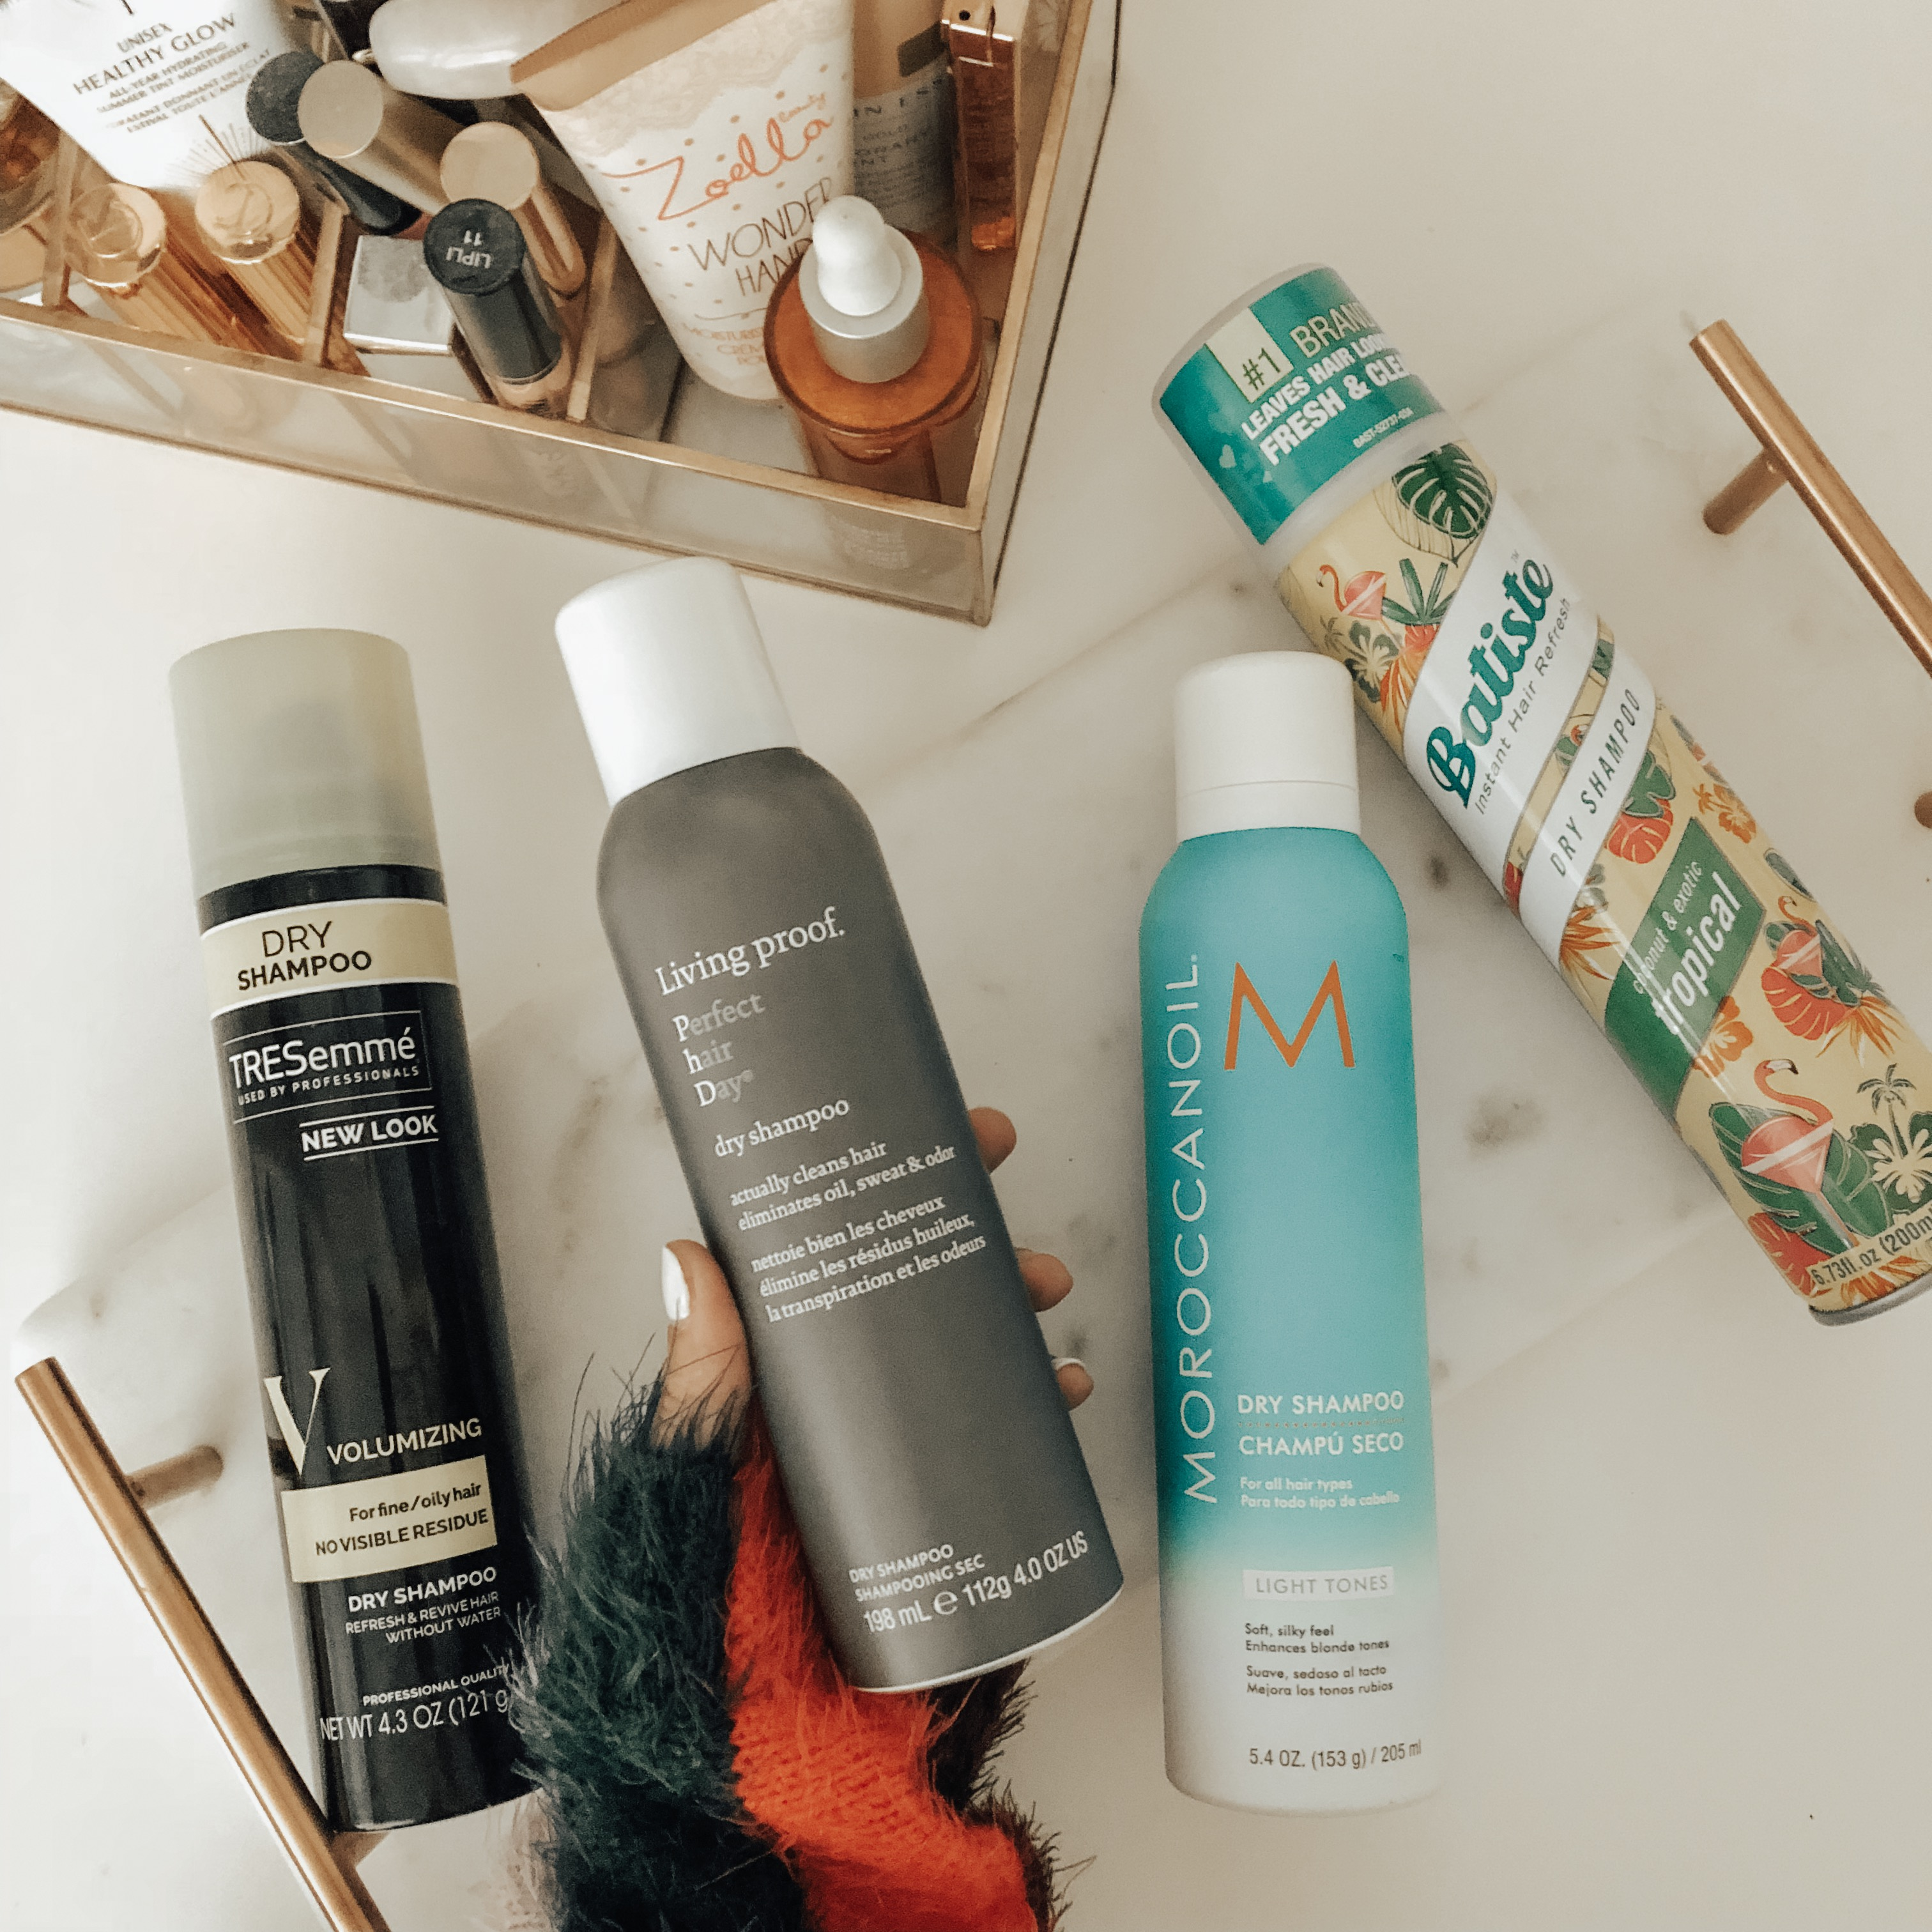 NATIONAL DRY SHAMPOO DAY- MY MUST HAVES - Jaclyn De Leon Style = Looking for the best dry shampoo on the market? I've tried and tested tons of popular brands and I'm dishing all about my must have top 4 dry shampoos. Two are worth the splurge and the other two are under $8 and you can find at Target or your local drug store.